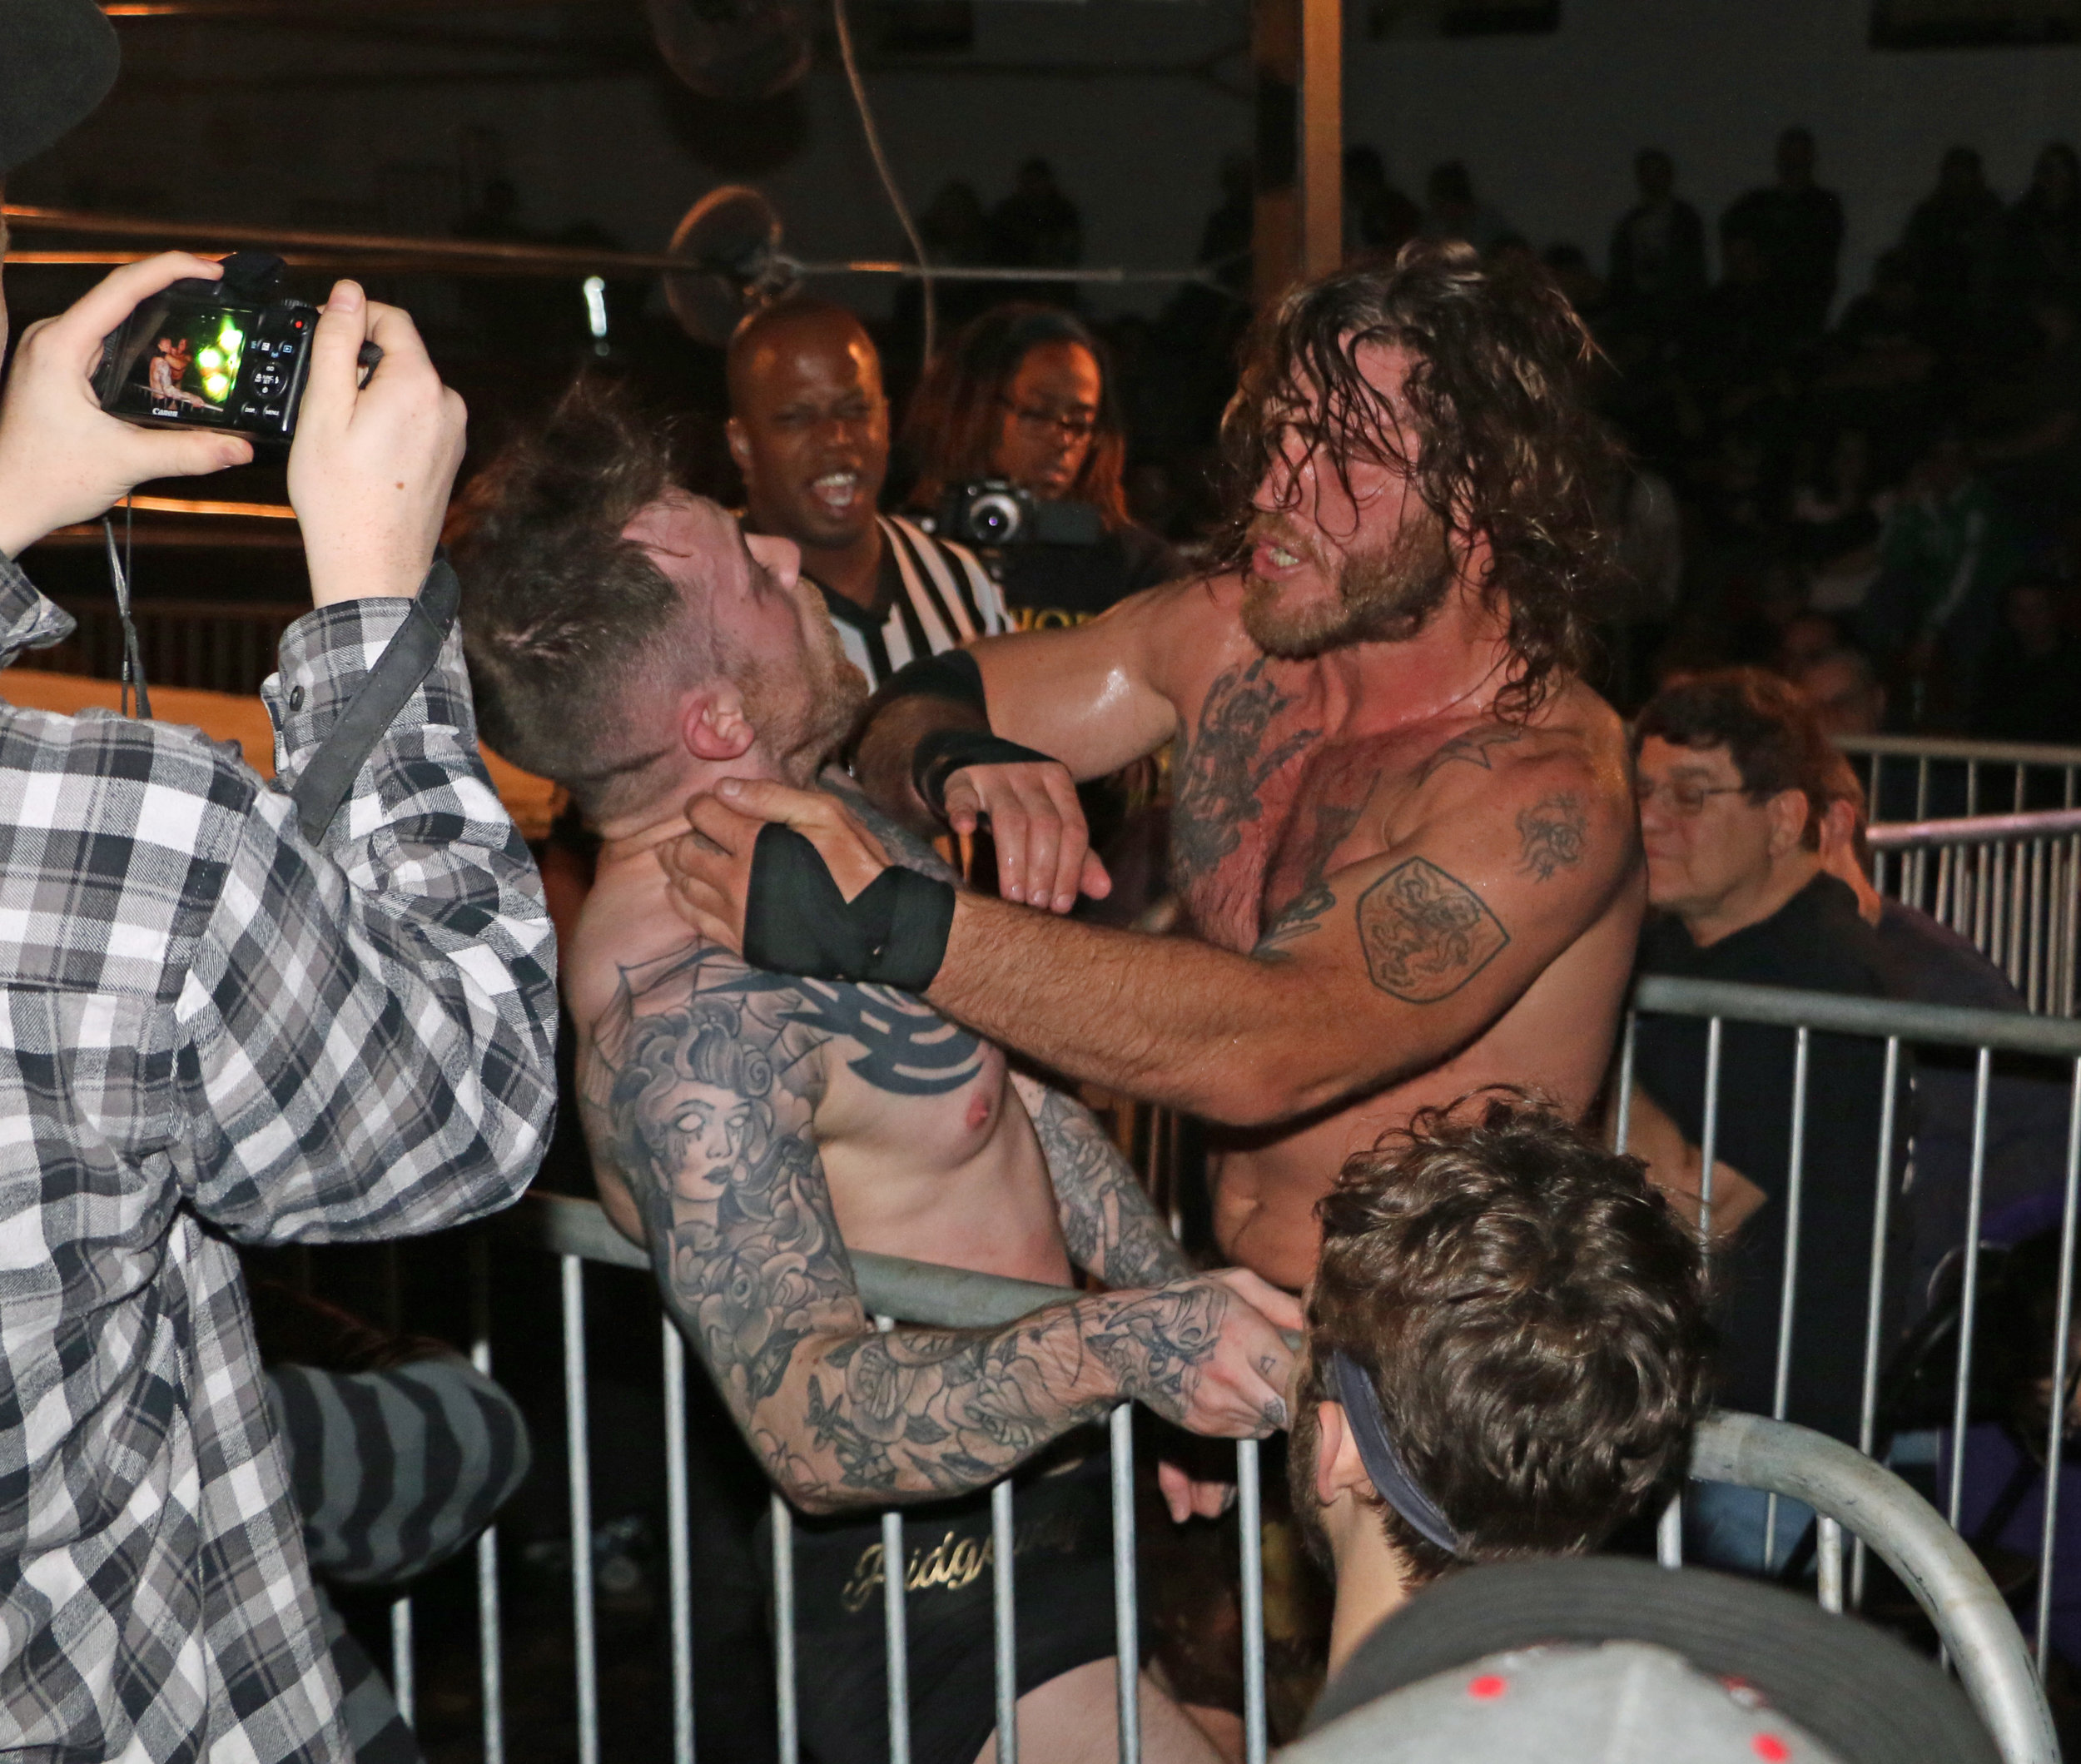 Tom Lawlor delivers a chop to Chris Ridgeway in the aisle.